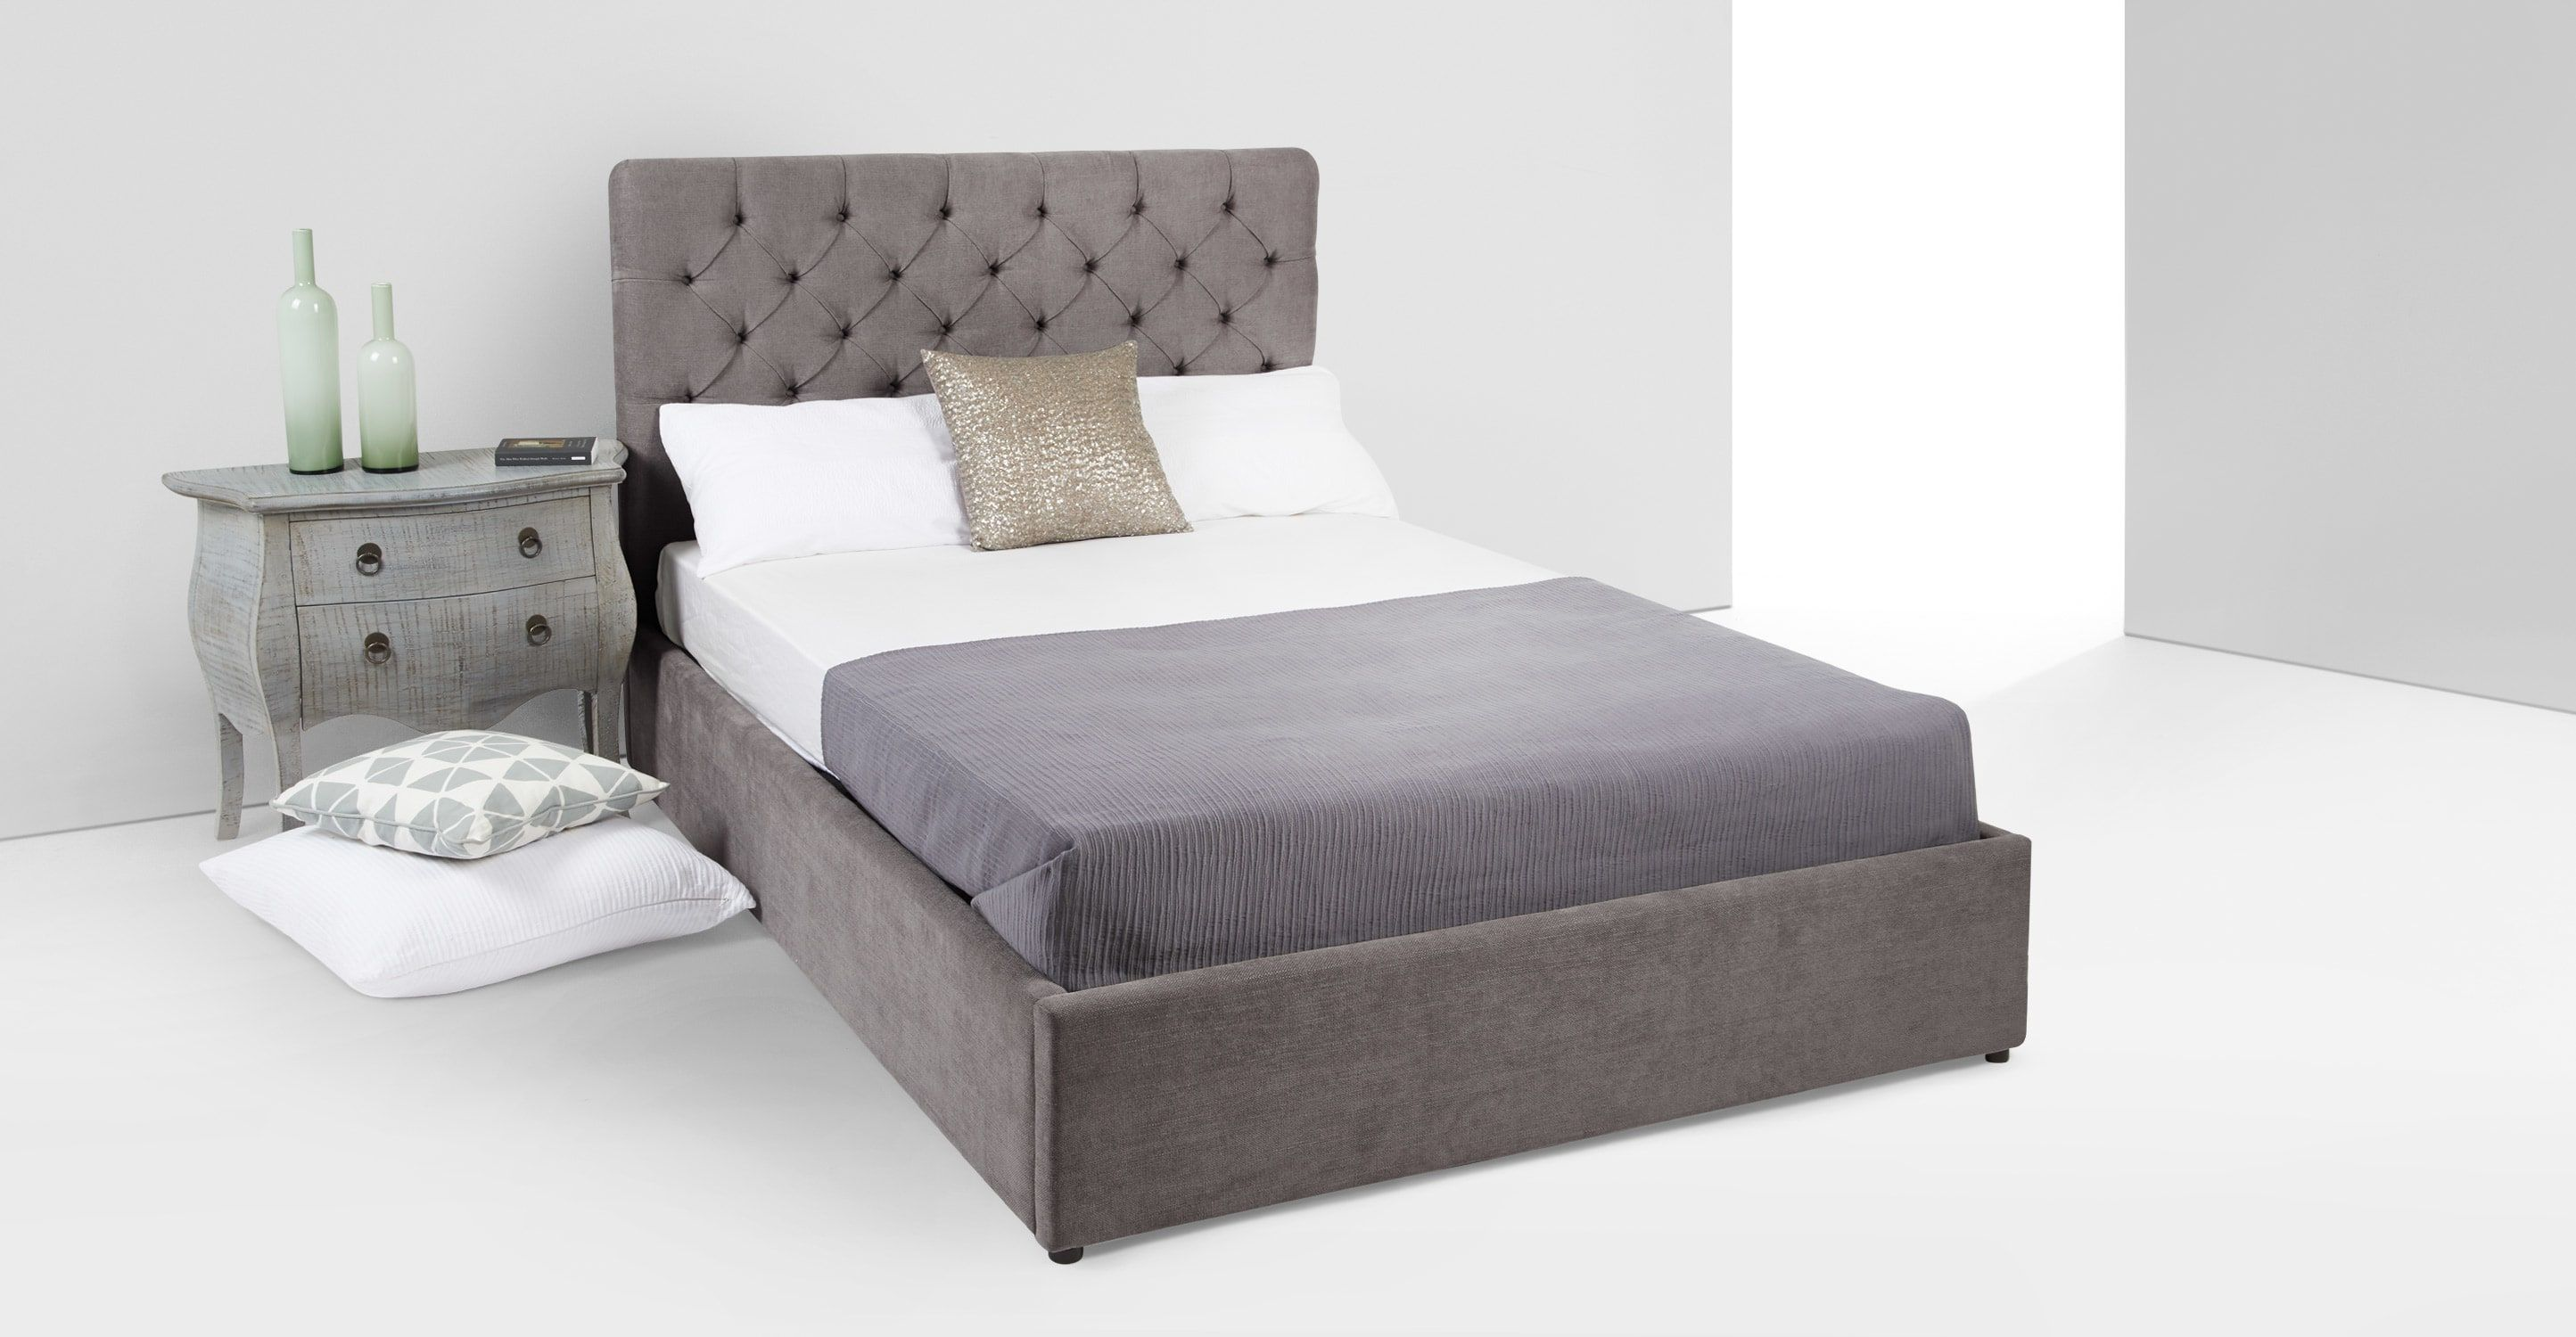 c19053314dbf Skye Kingsize Bed With Storage, Pewter from Made.com. Grey. Express  delivery. Every hard-working room deserves a bed that commands attention.  One th.